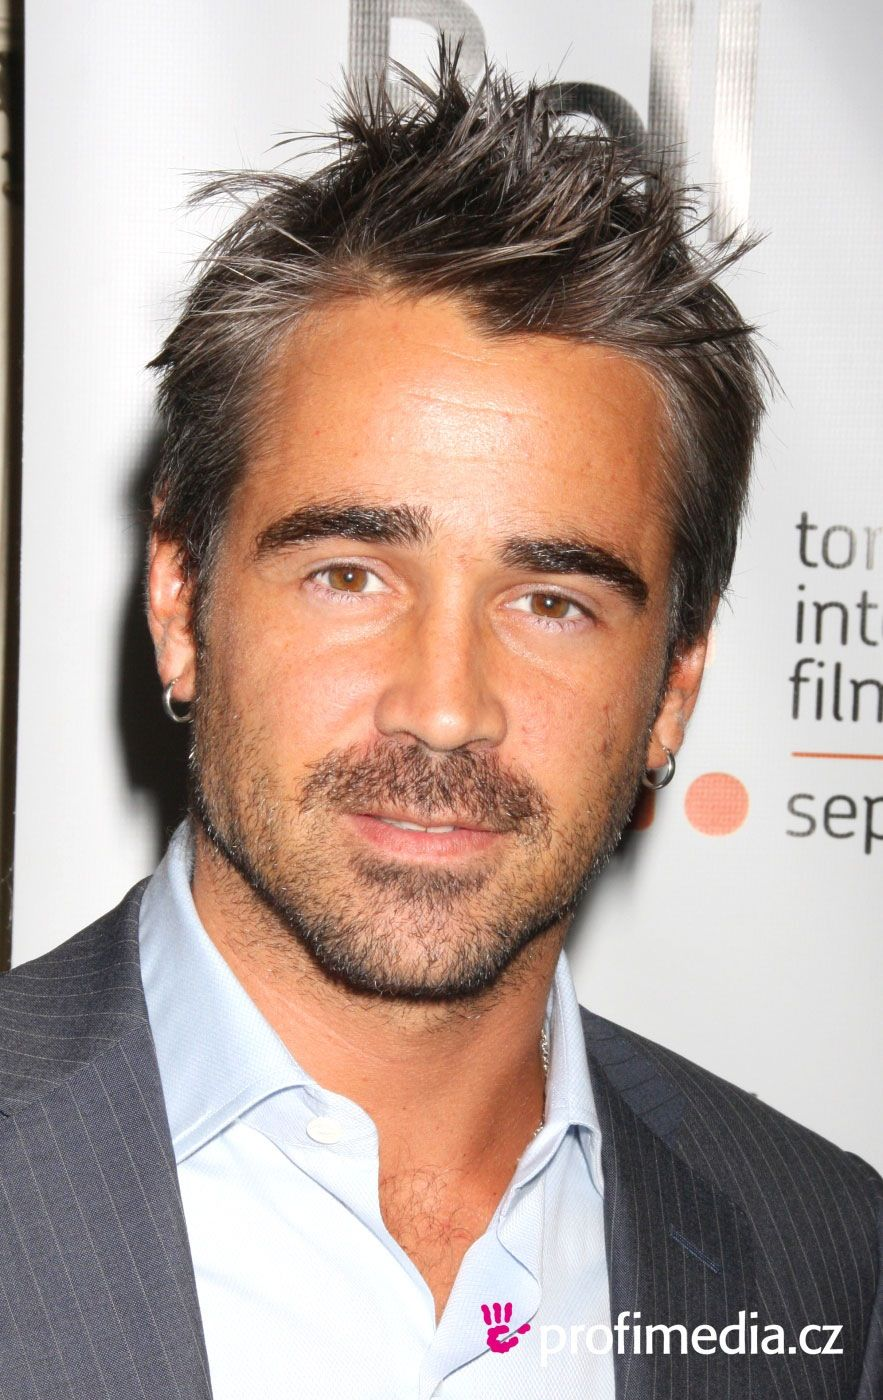 Snapchat Colin Farrell nudes (23 photos), Topless, Cleavage, Twitter, braless 2017